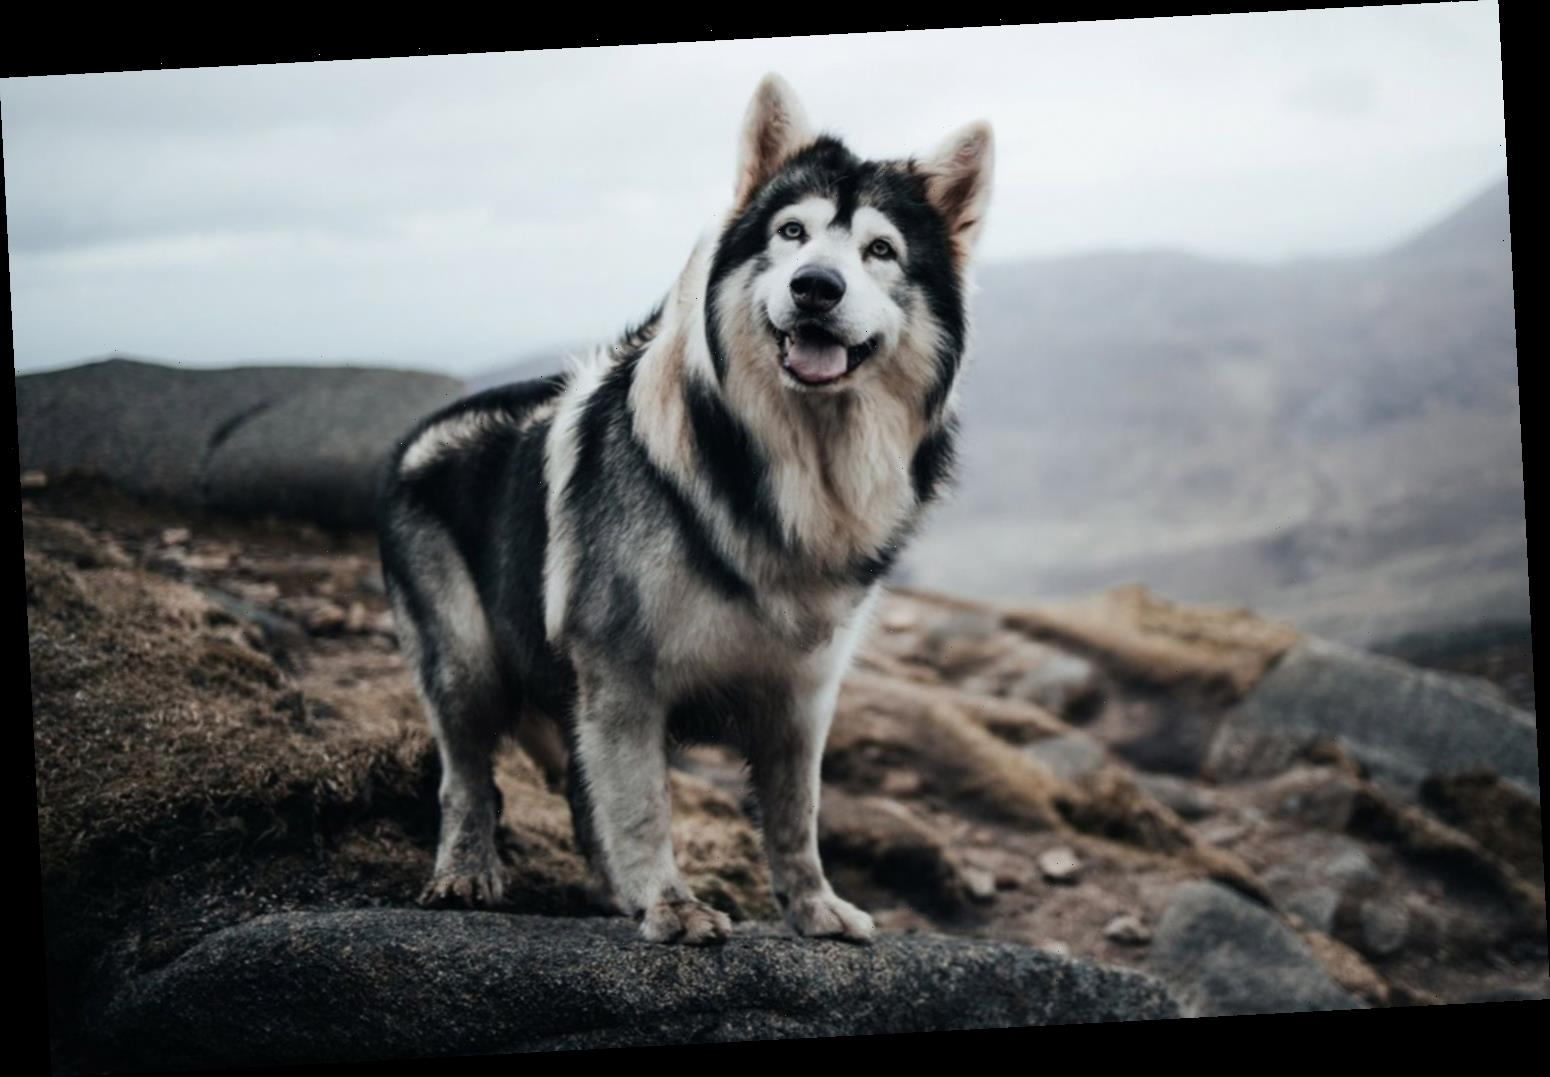 Dog Who Played Bran Stark's Direwolf in Game of Thrones Dies from Cancer